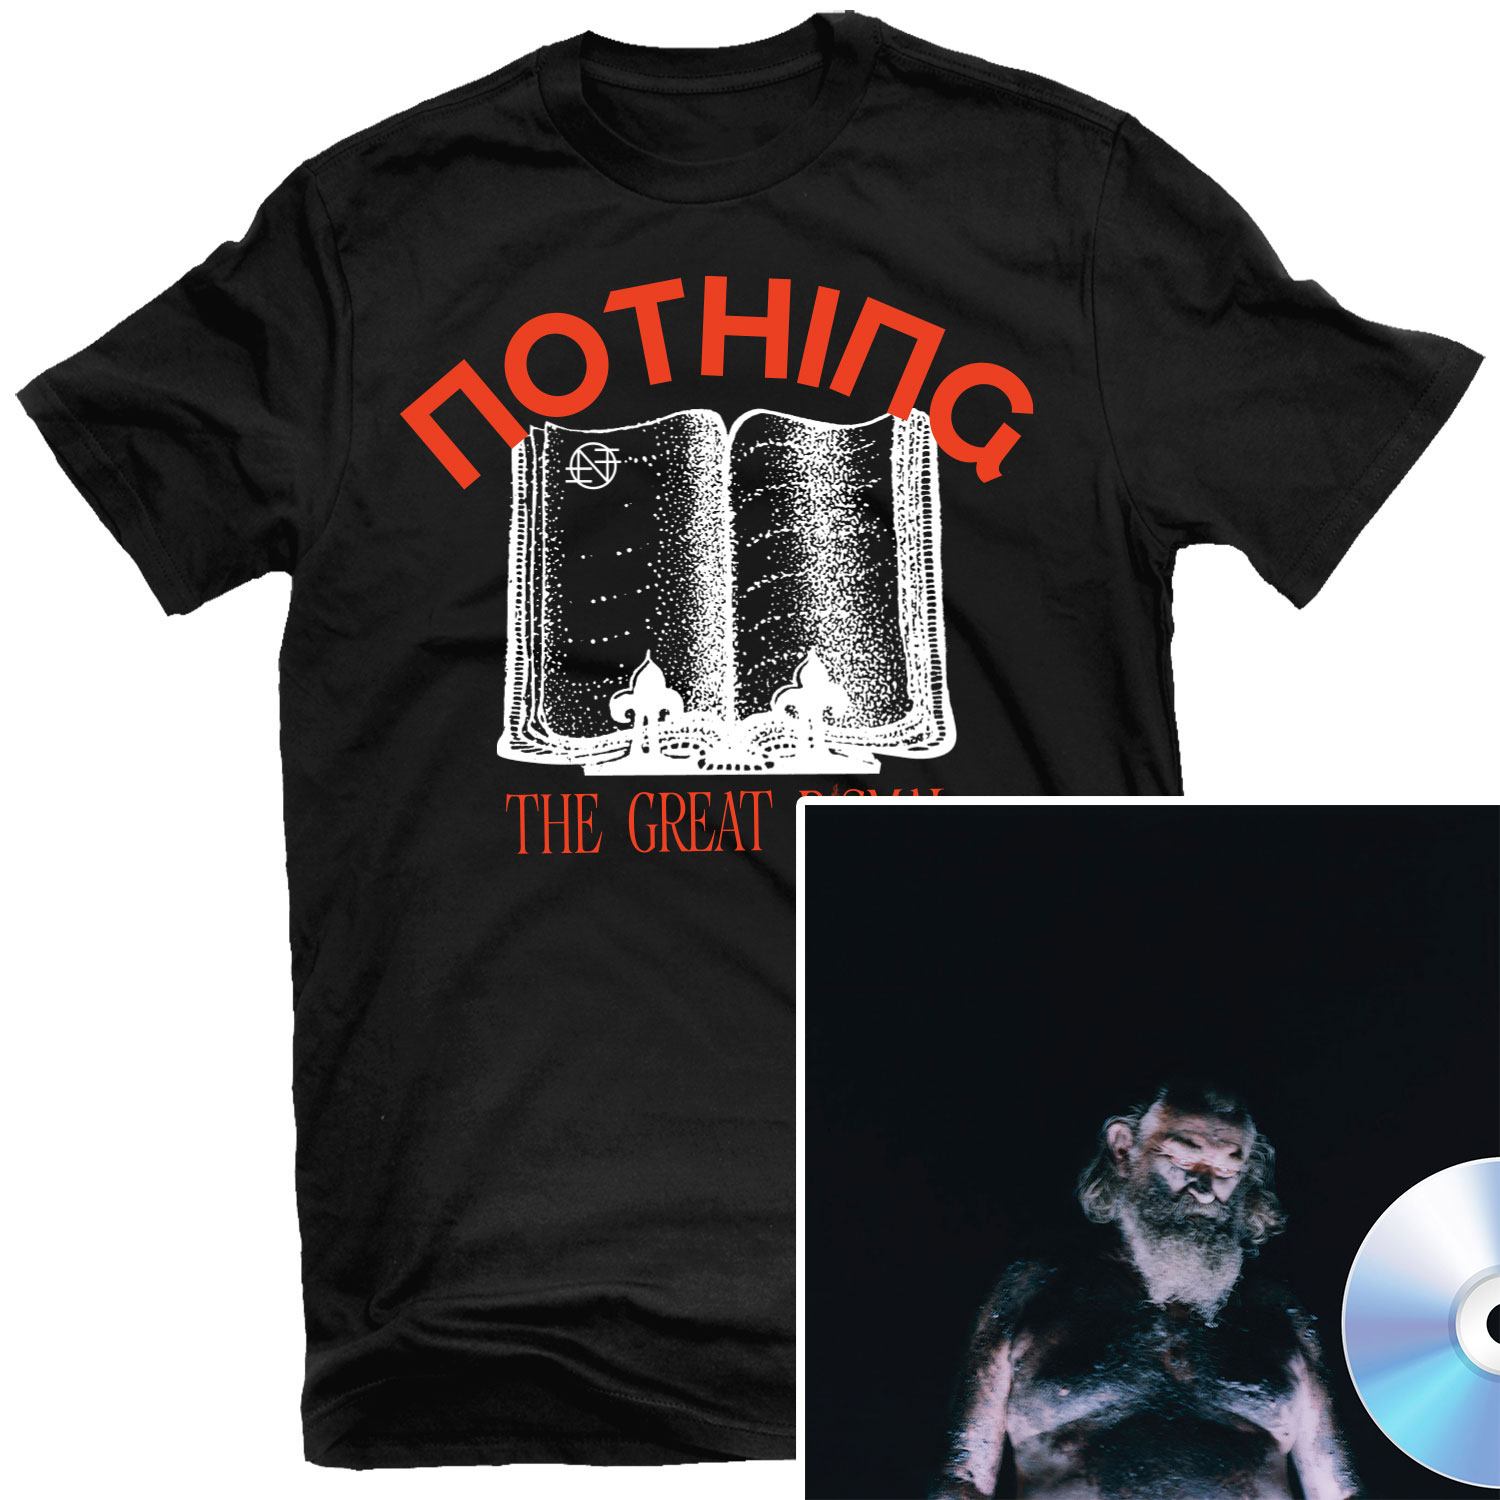 Just a Story T Shirt + The Great Dismal CD Bundle